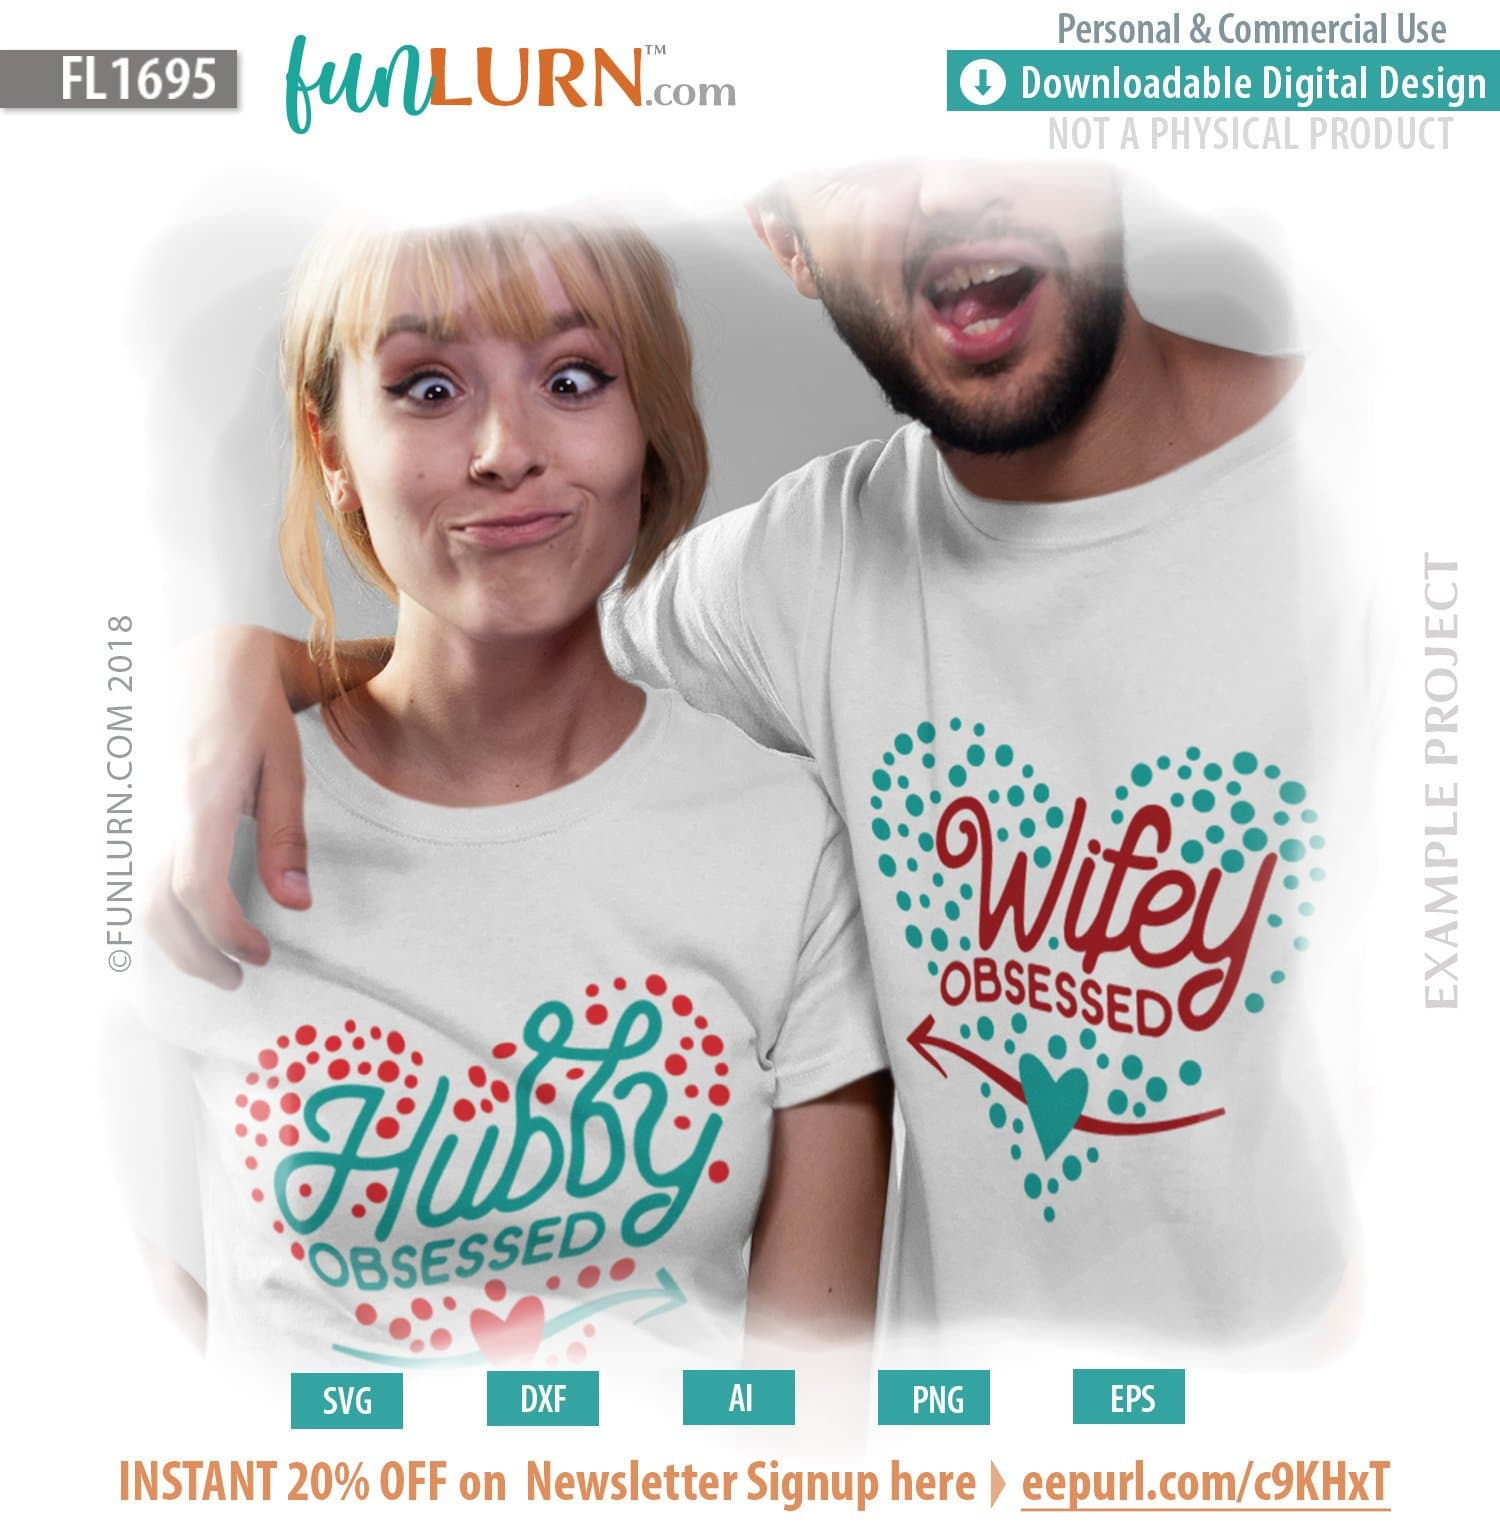 Hubby Obsessed Svg Wifey Obsessed Svg Valentine S Day Couple Shirt